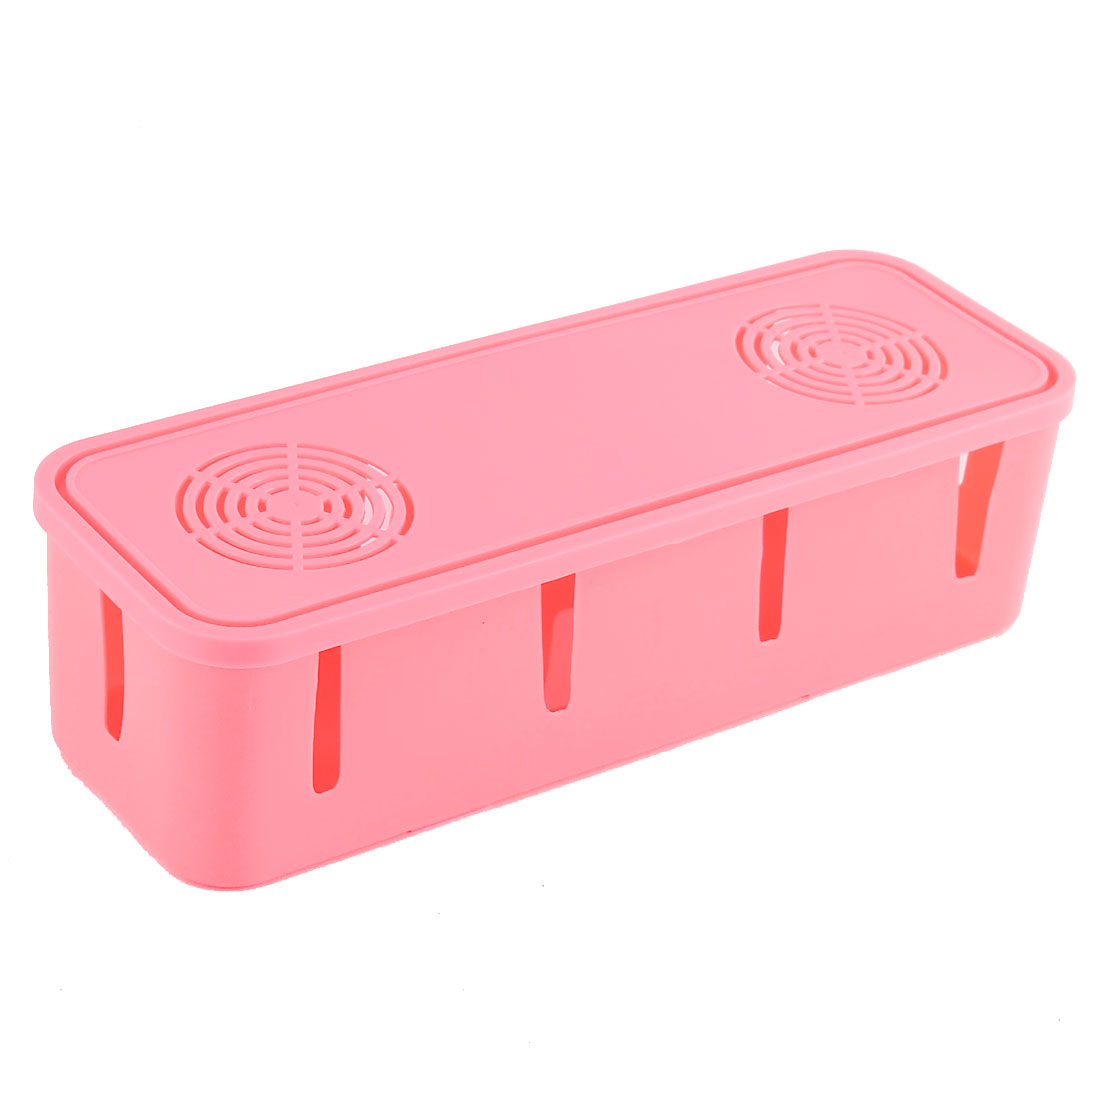 Plastic Rectangle Shape 10 Holes Security Power Cord Socket Storage Case Pink